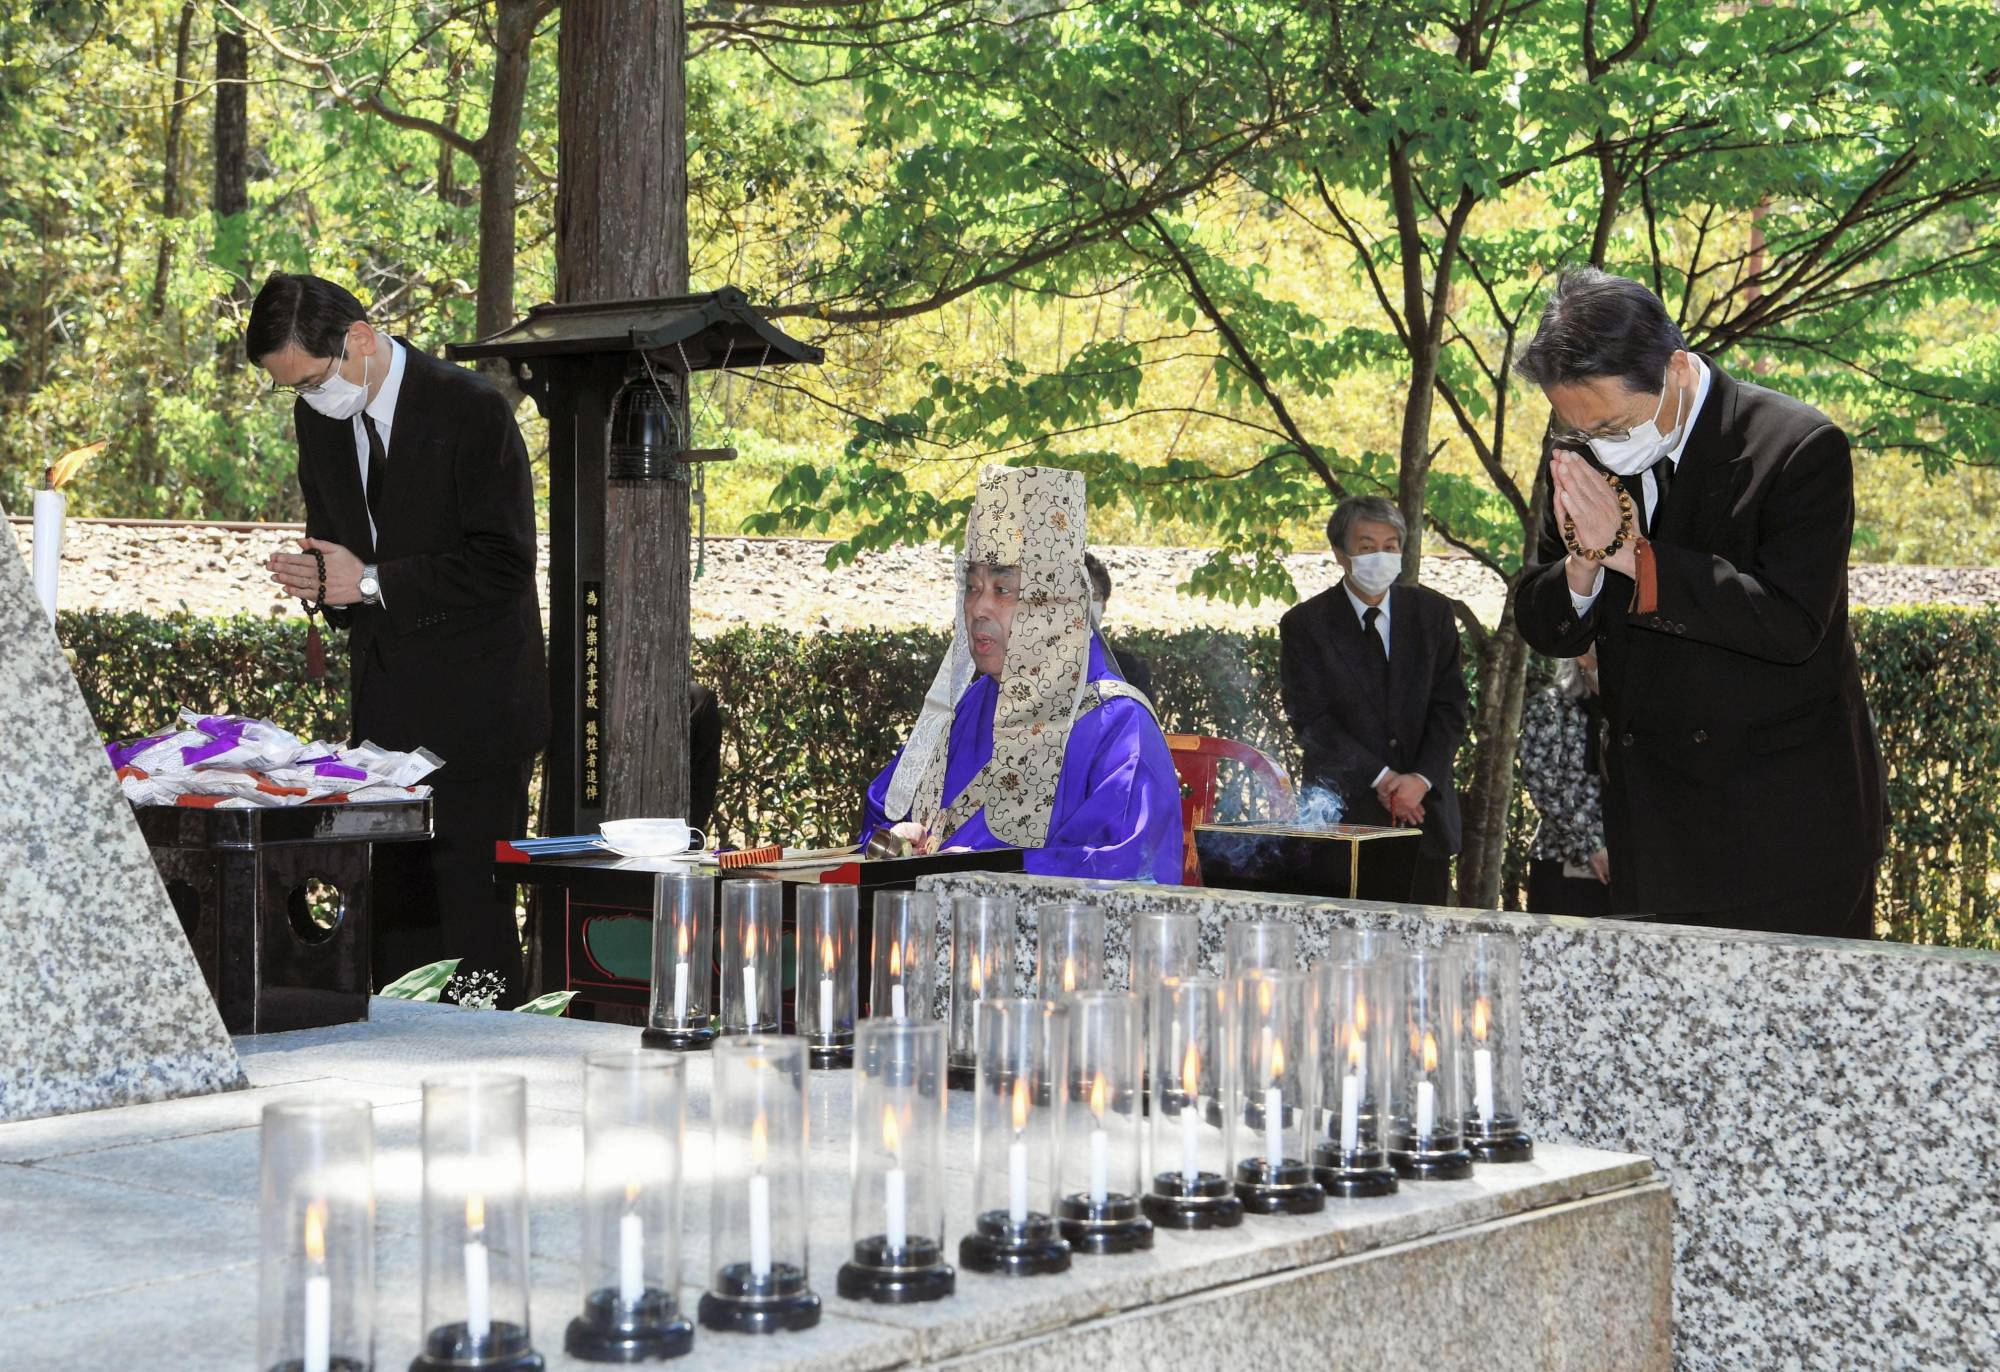 JR West President Kazuaki Hasegawa, left, and Senjiro Masaki, president of Shigaraki Kohgen Railway, right, attend a memorial ceremony on Thursday for a 1991 train collision accident in Shigaraki, now Koka, in Shiga Prefecture that claimed 42 lives.  | POOL / VIA KYODO